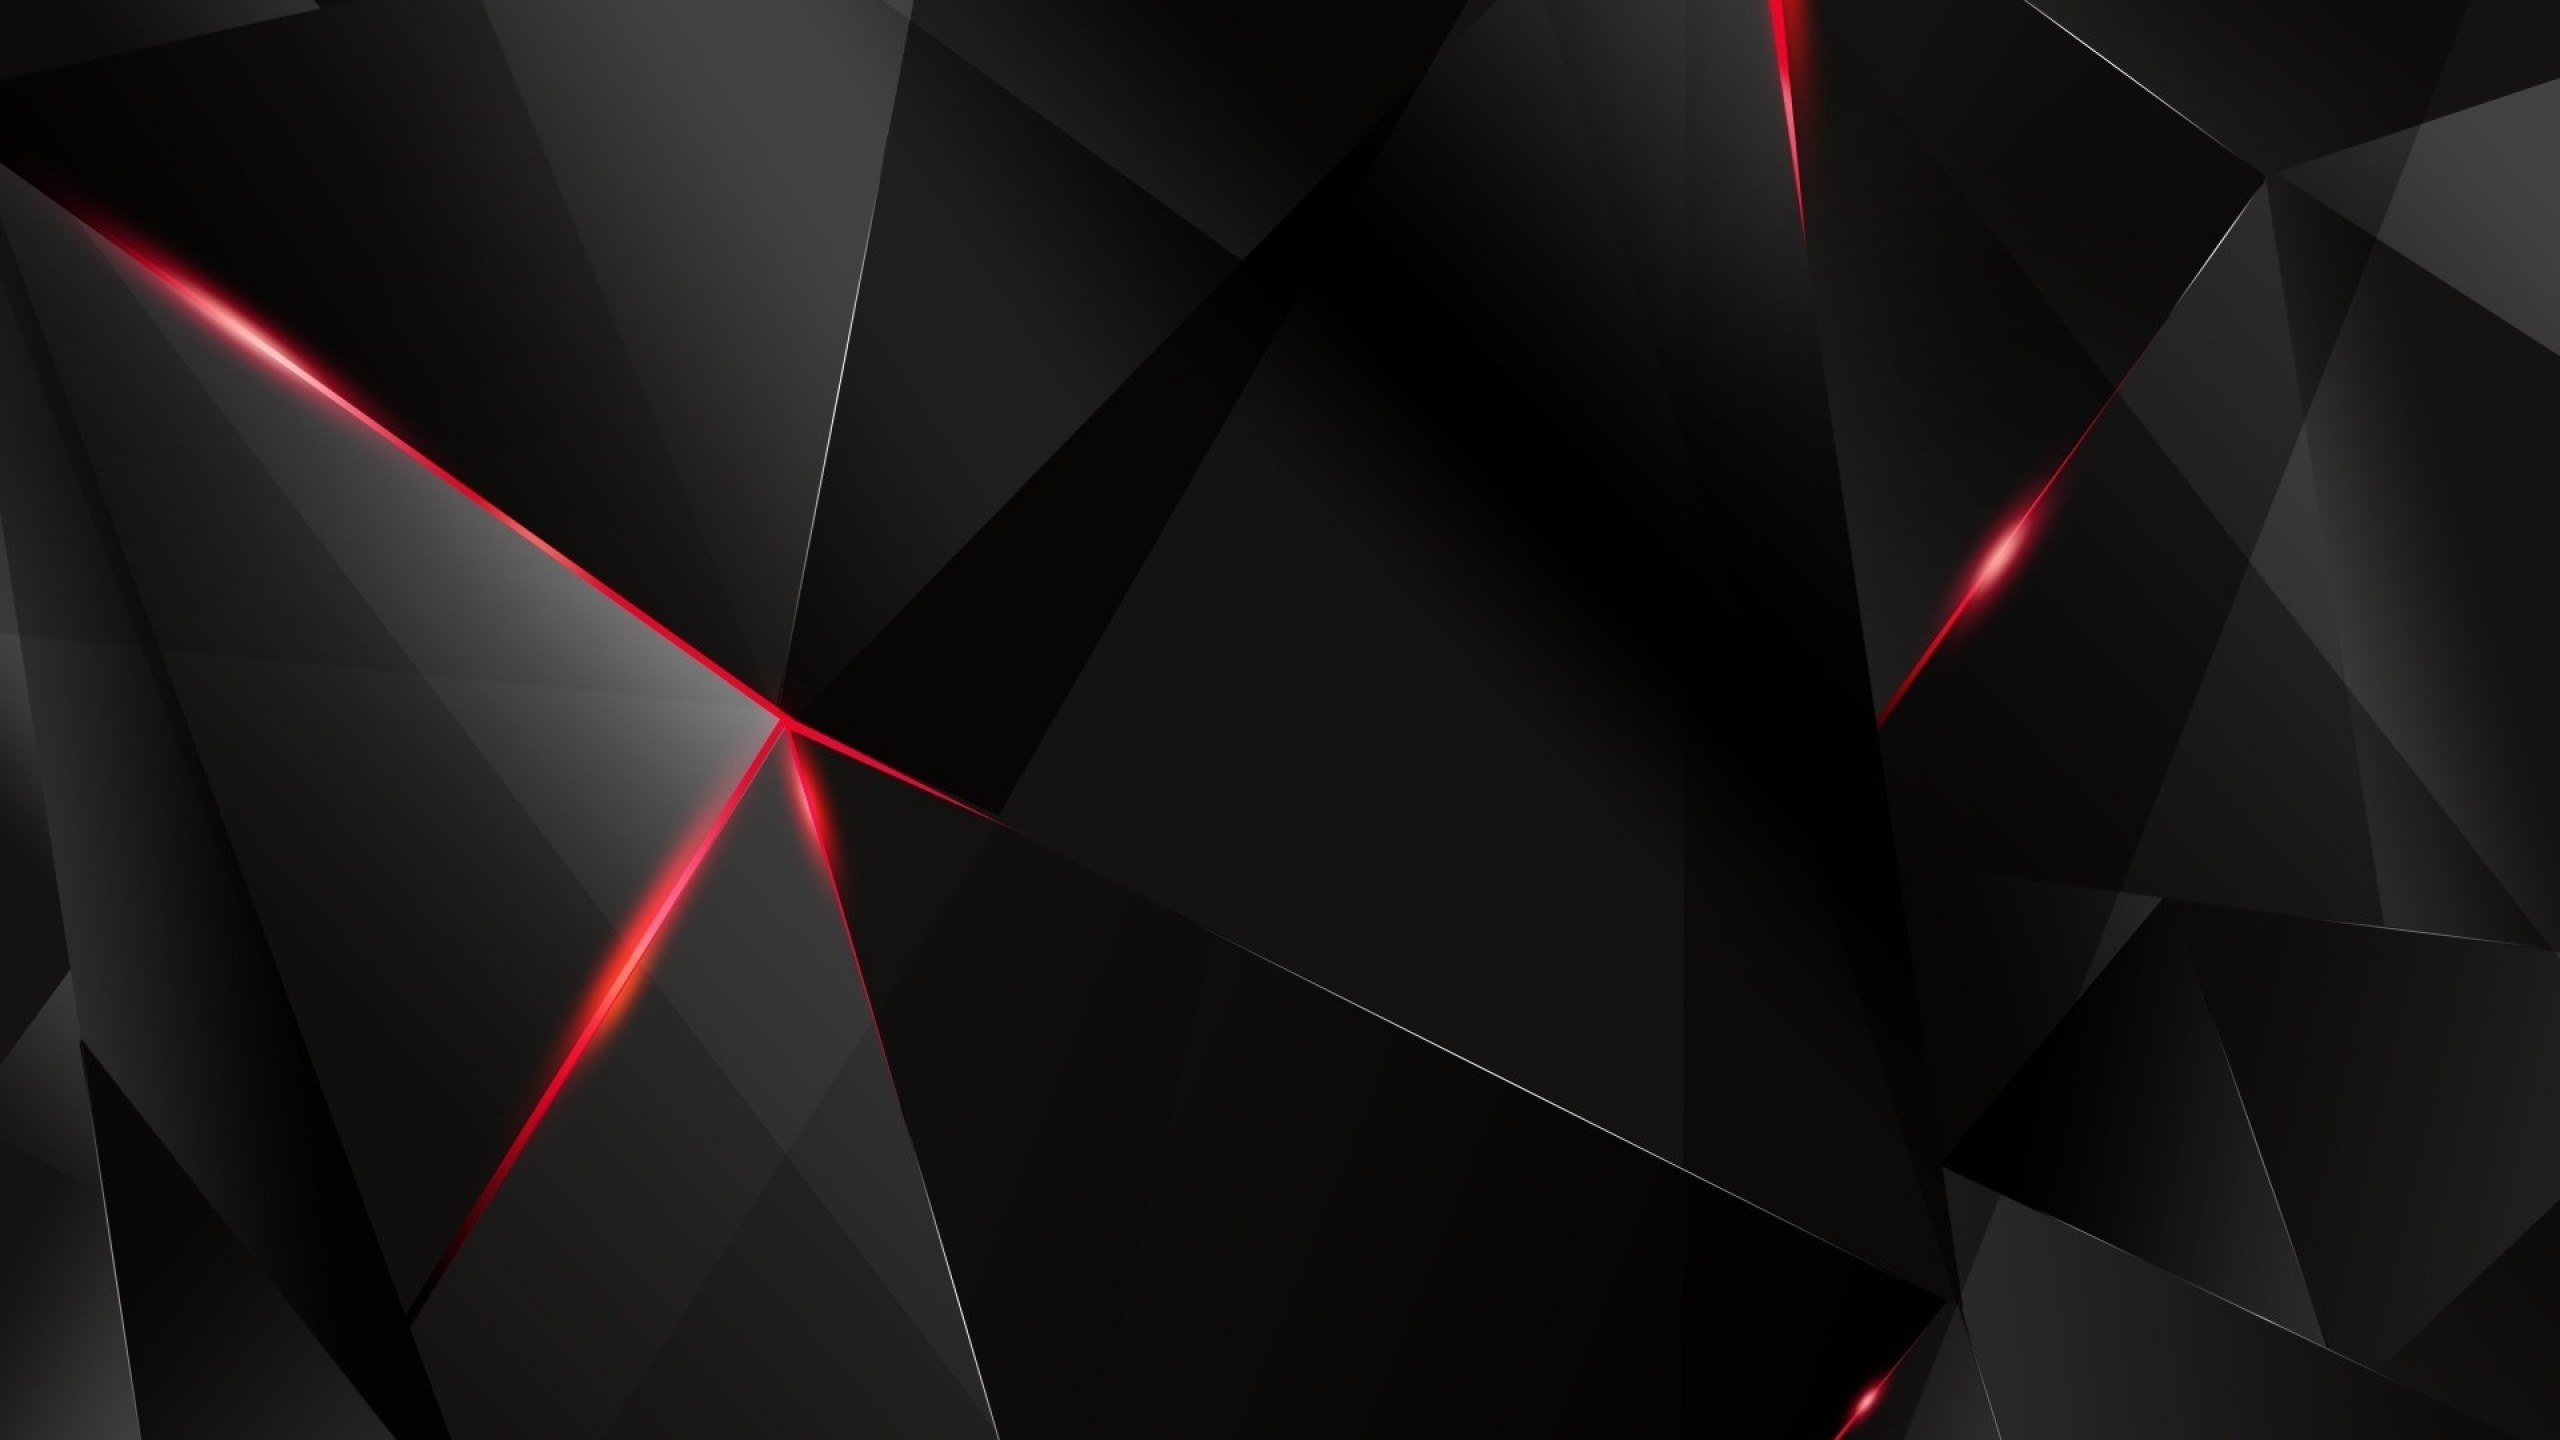 2560x1440 black wallpaper (84+ images)